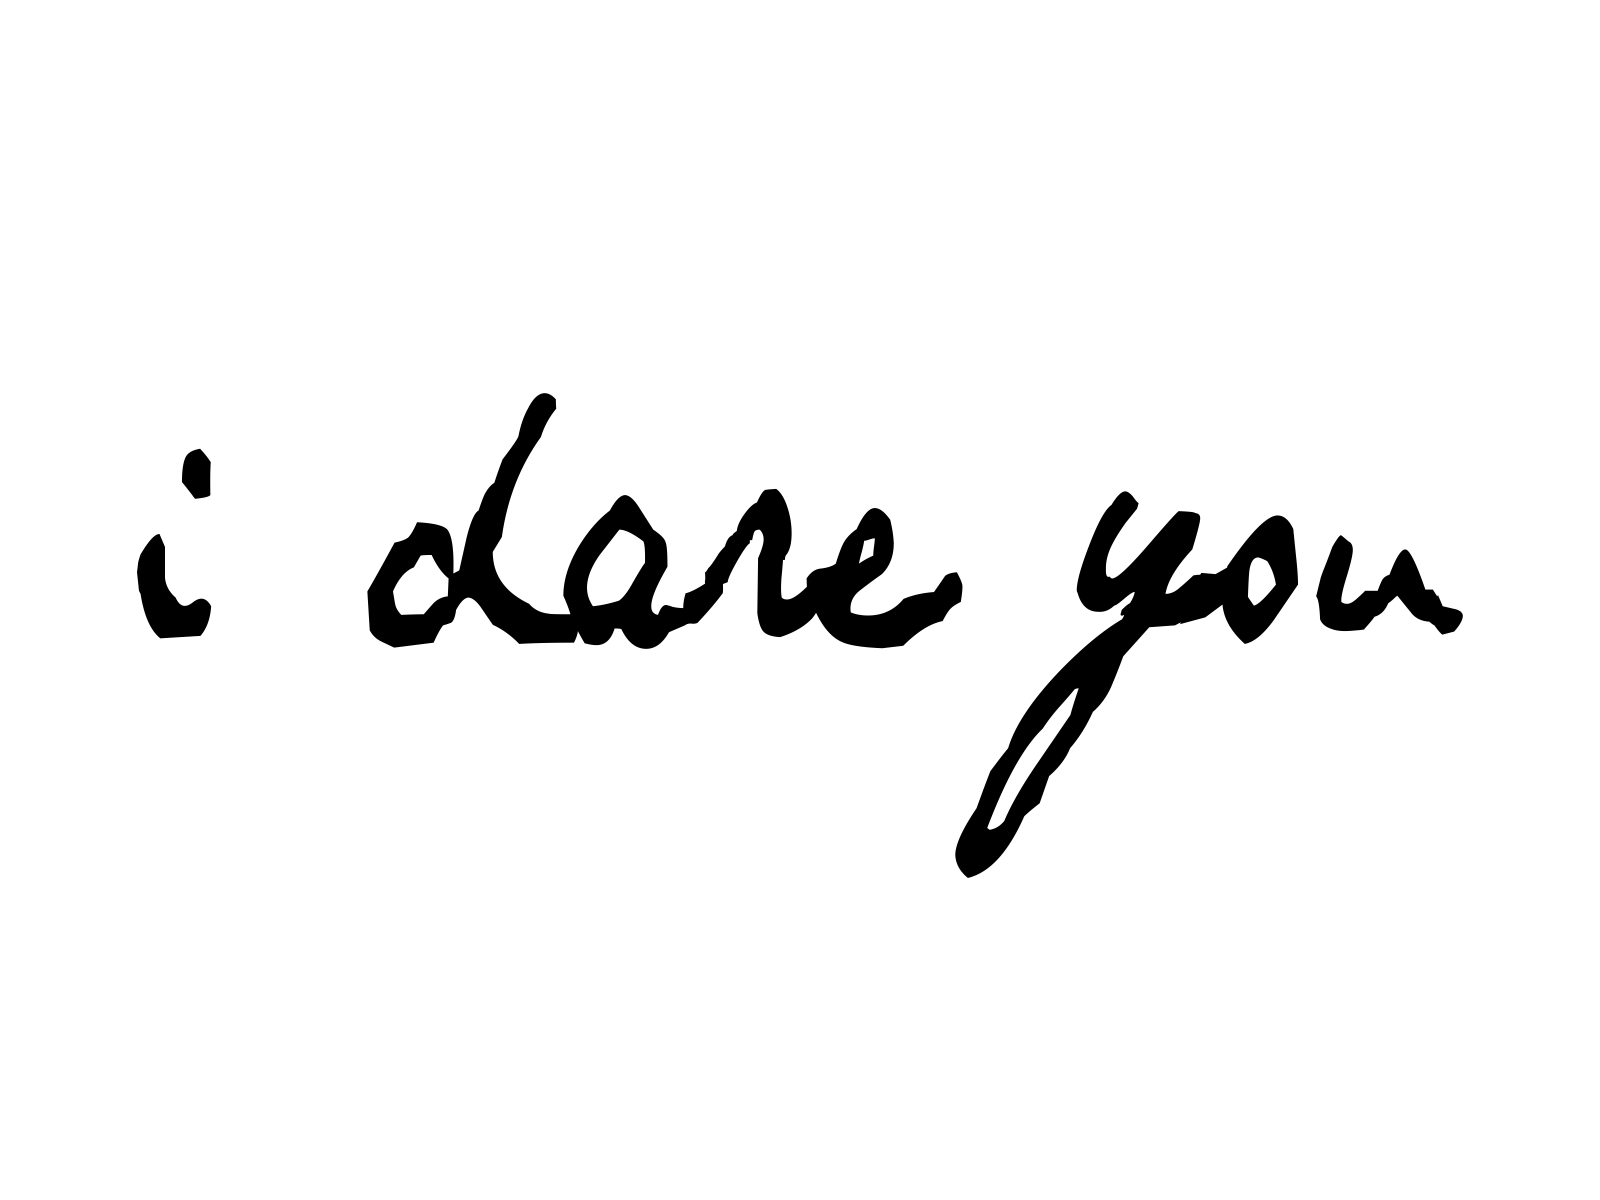 i+dare+you.png